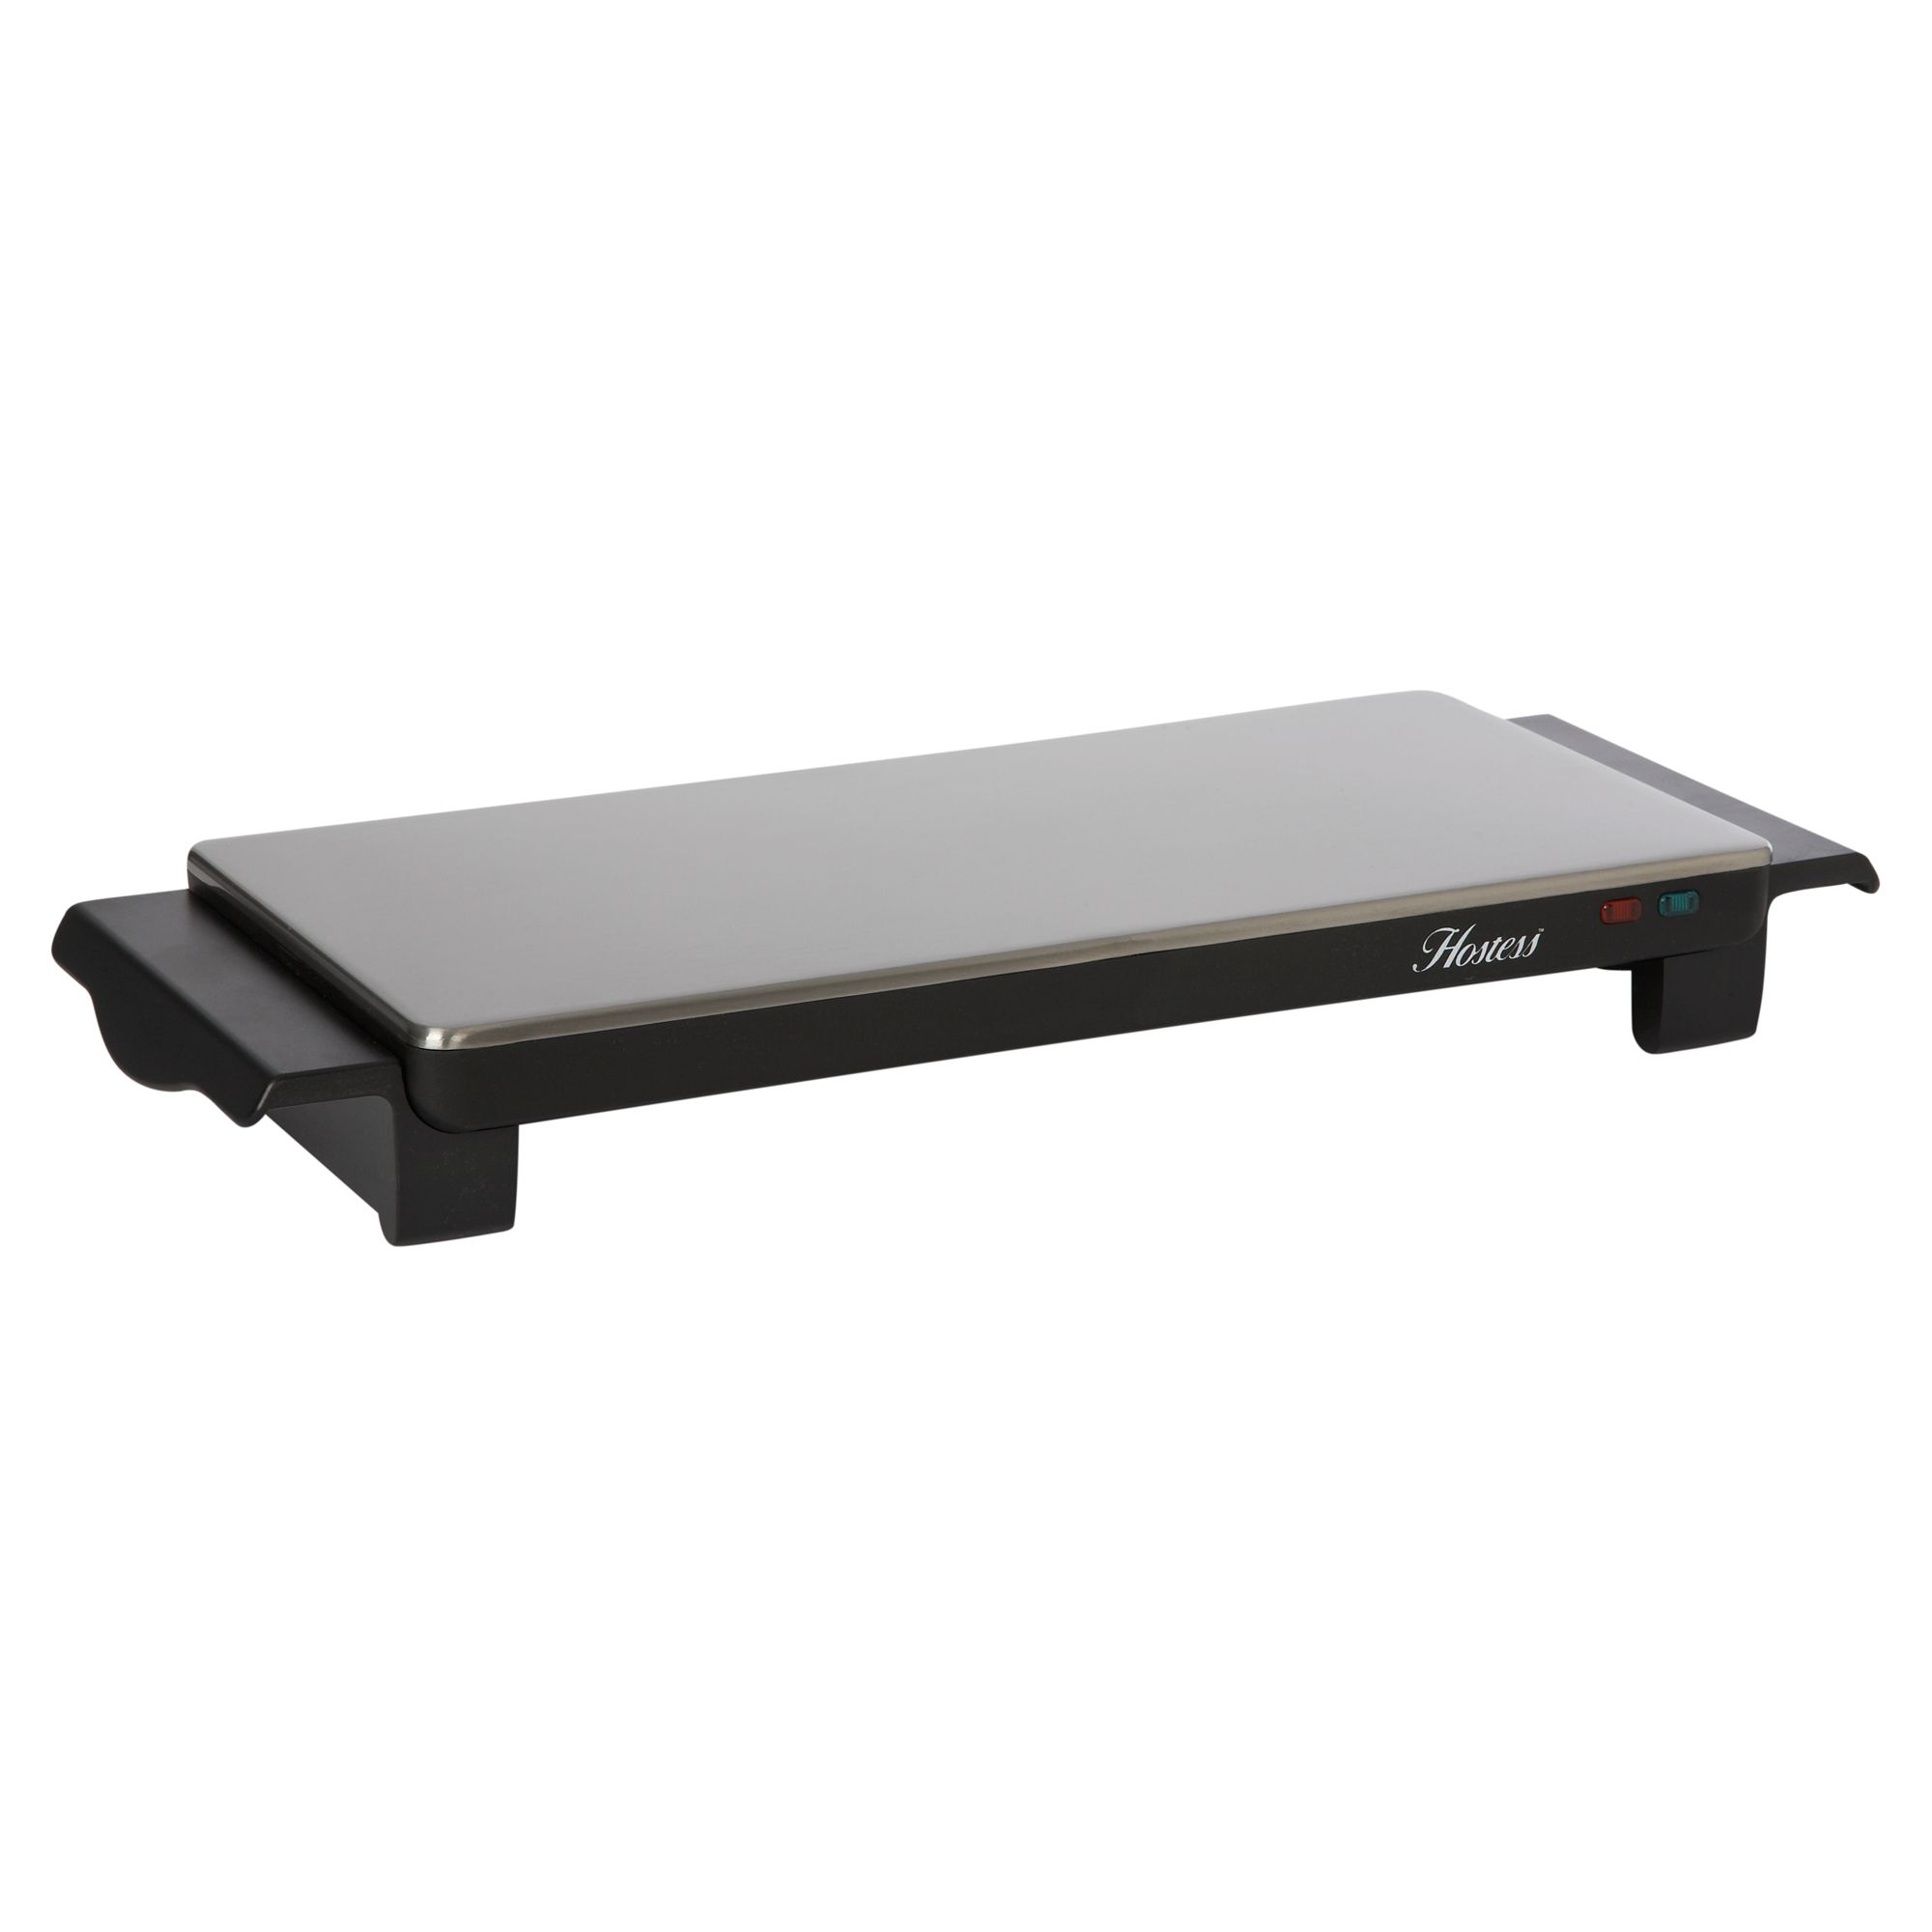 HT4020 small hot tray